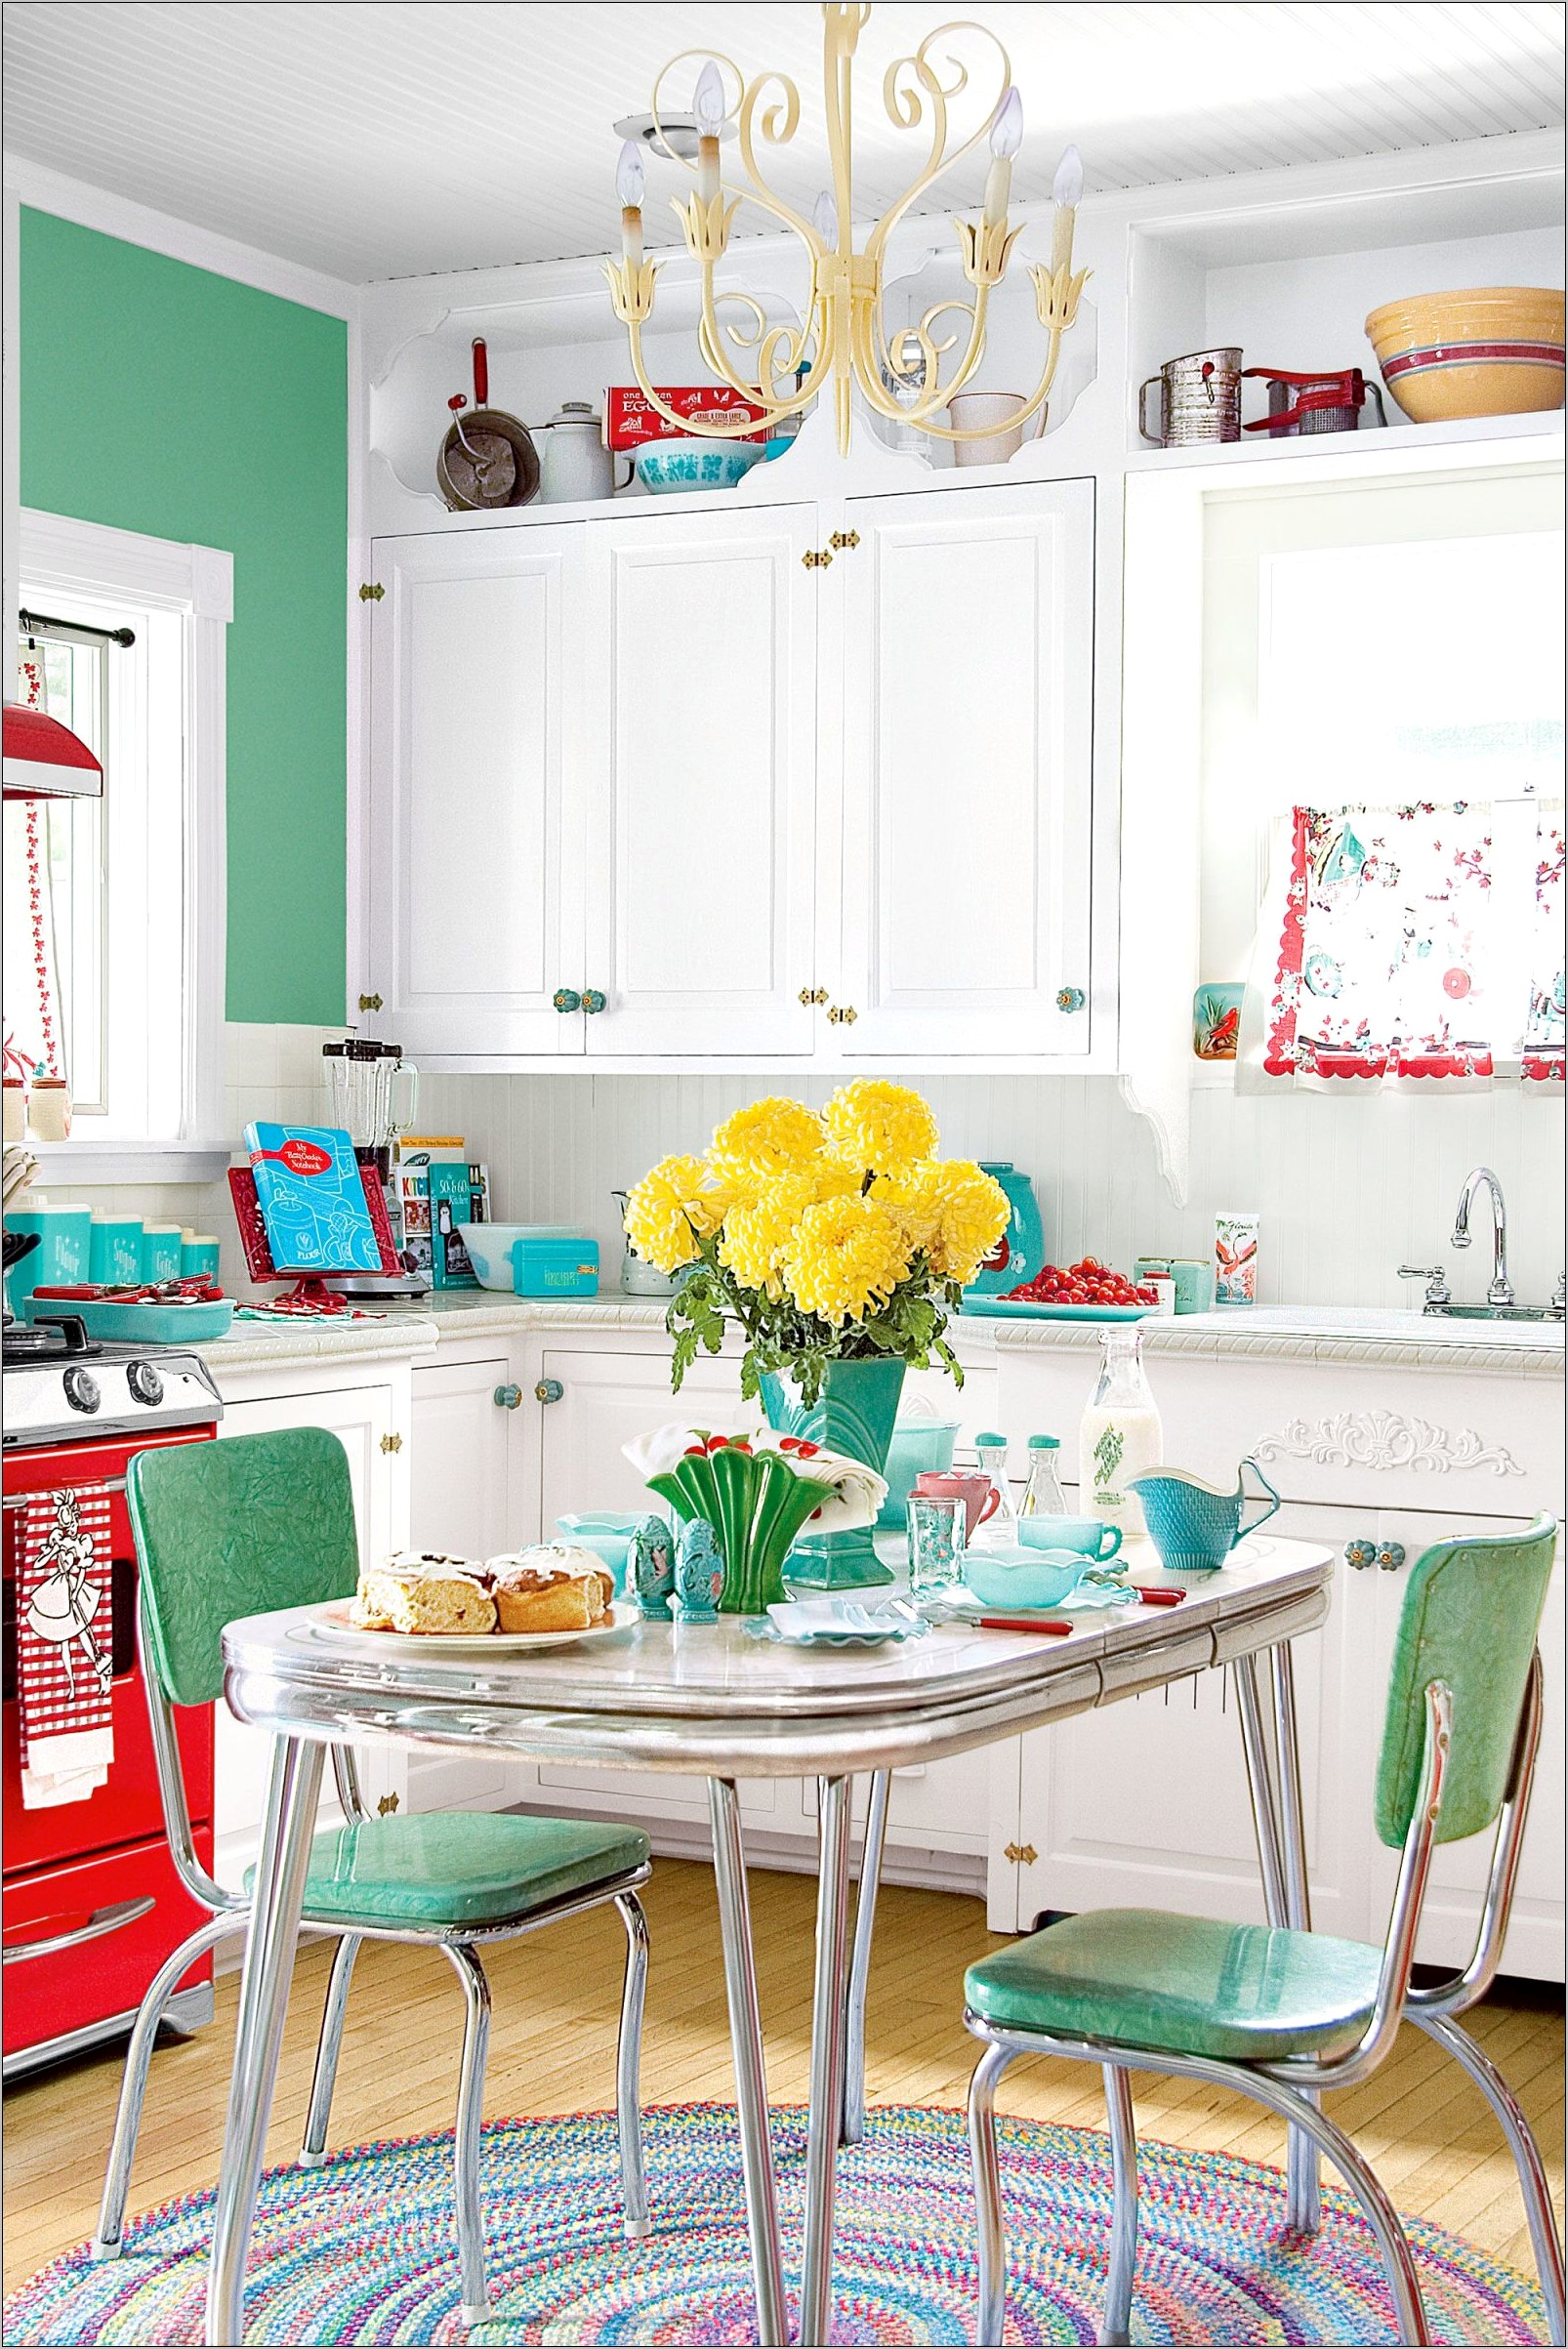 Kitchen Diner Decor Ideas